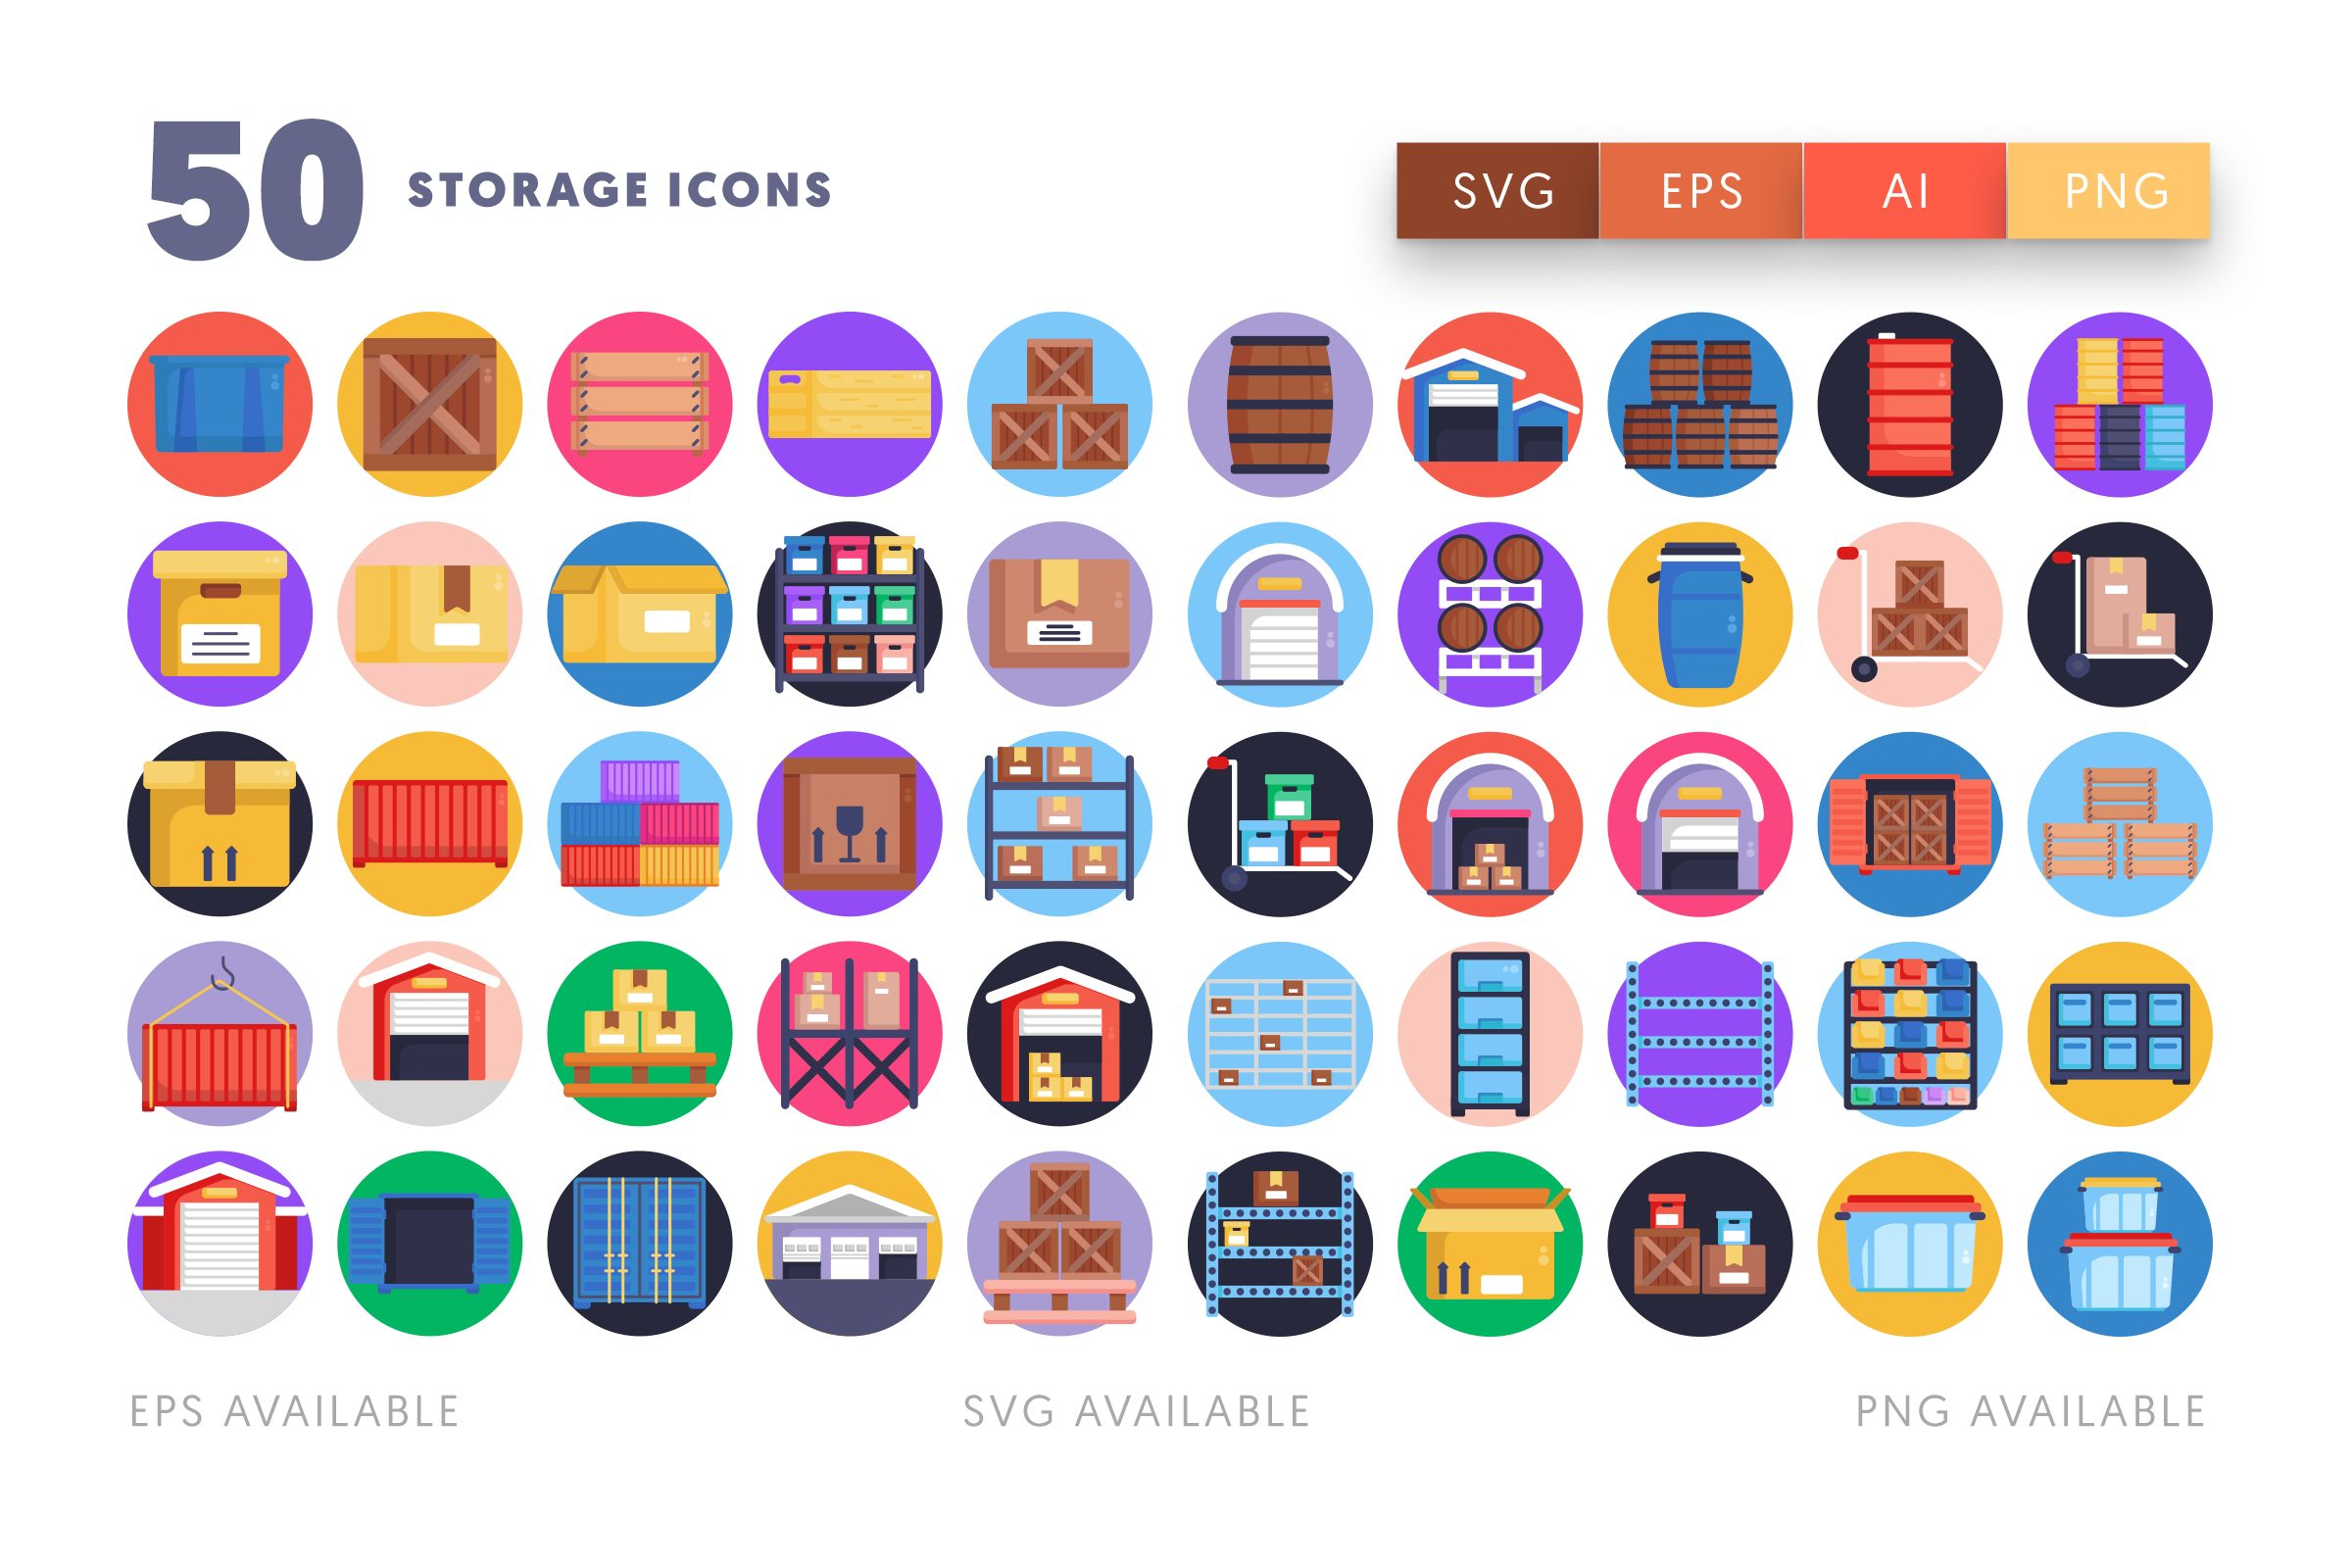 Storage icons png/svg/eps